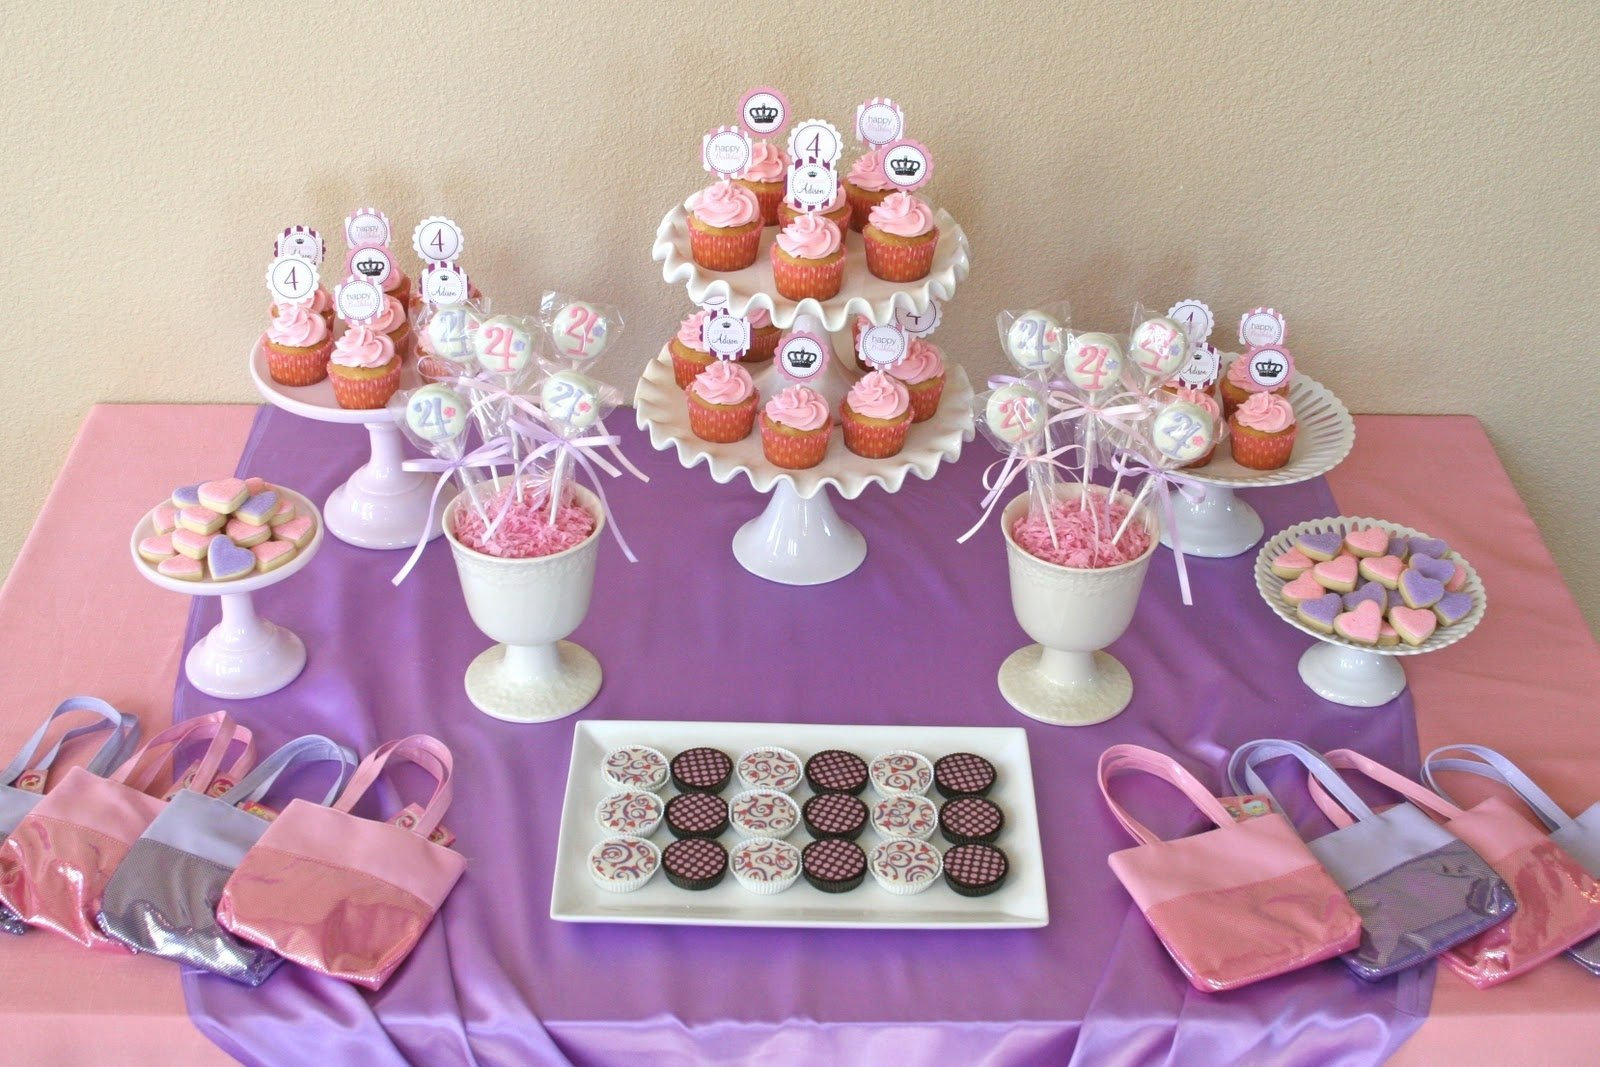 10 Unique Princess Party Ideas For 4 Year Old parties adisons princess party glorious treats 2020